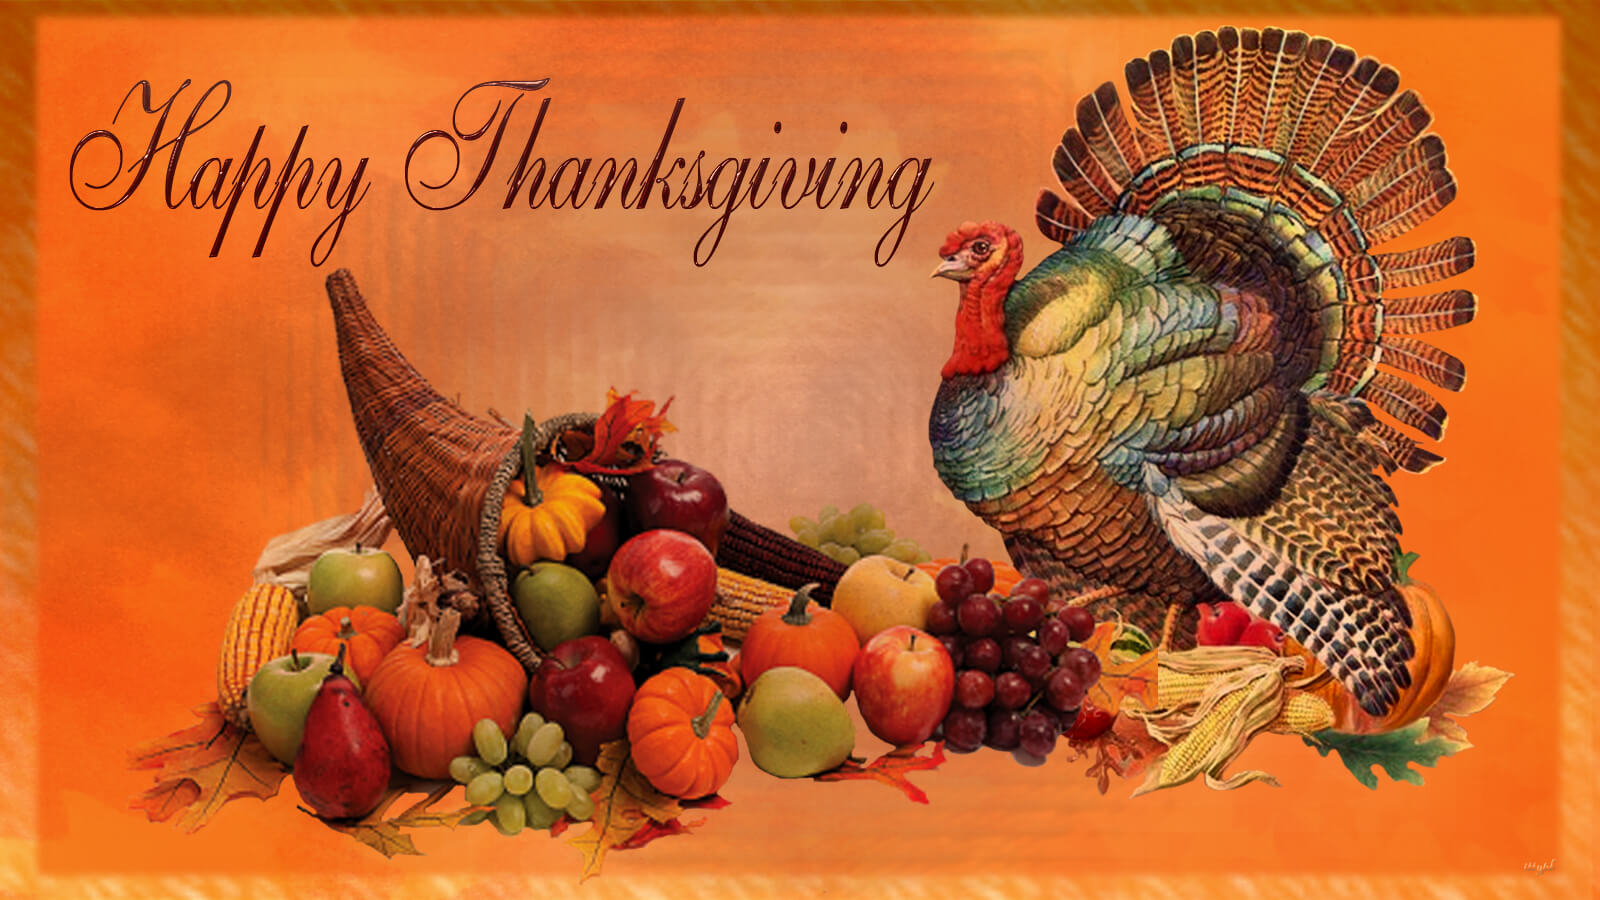 Christian Wallpaper Fall Thanksgiving Day Wallpapers Page 2